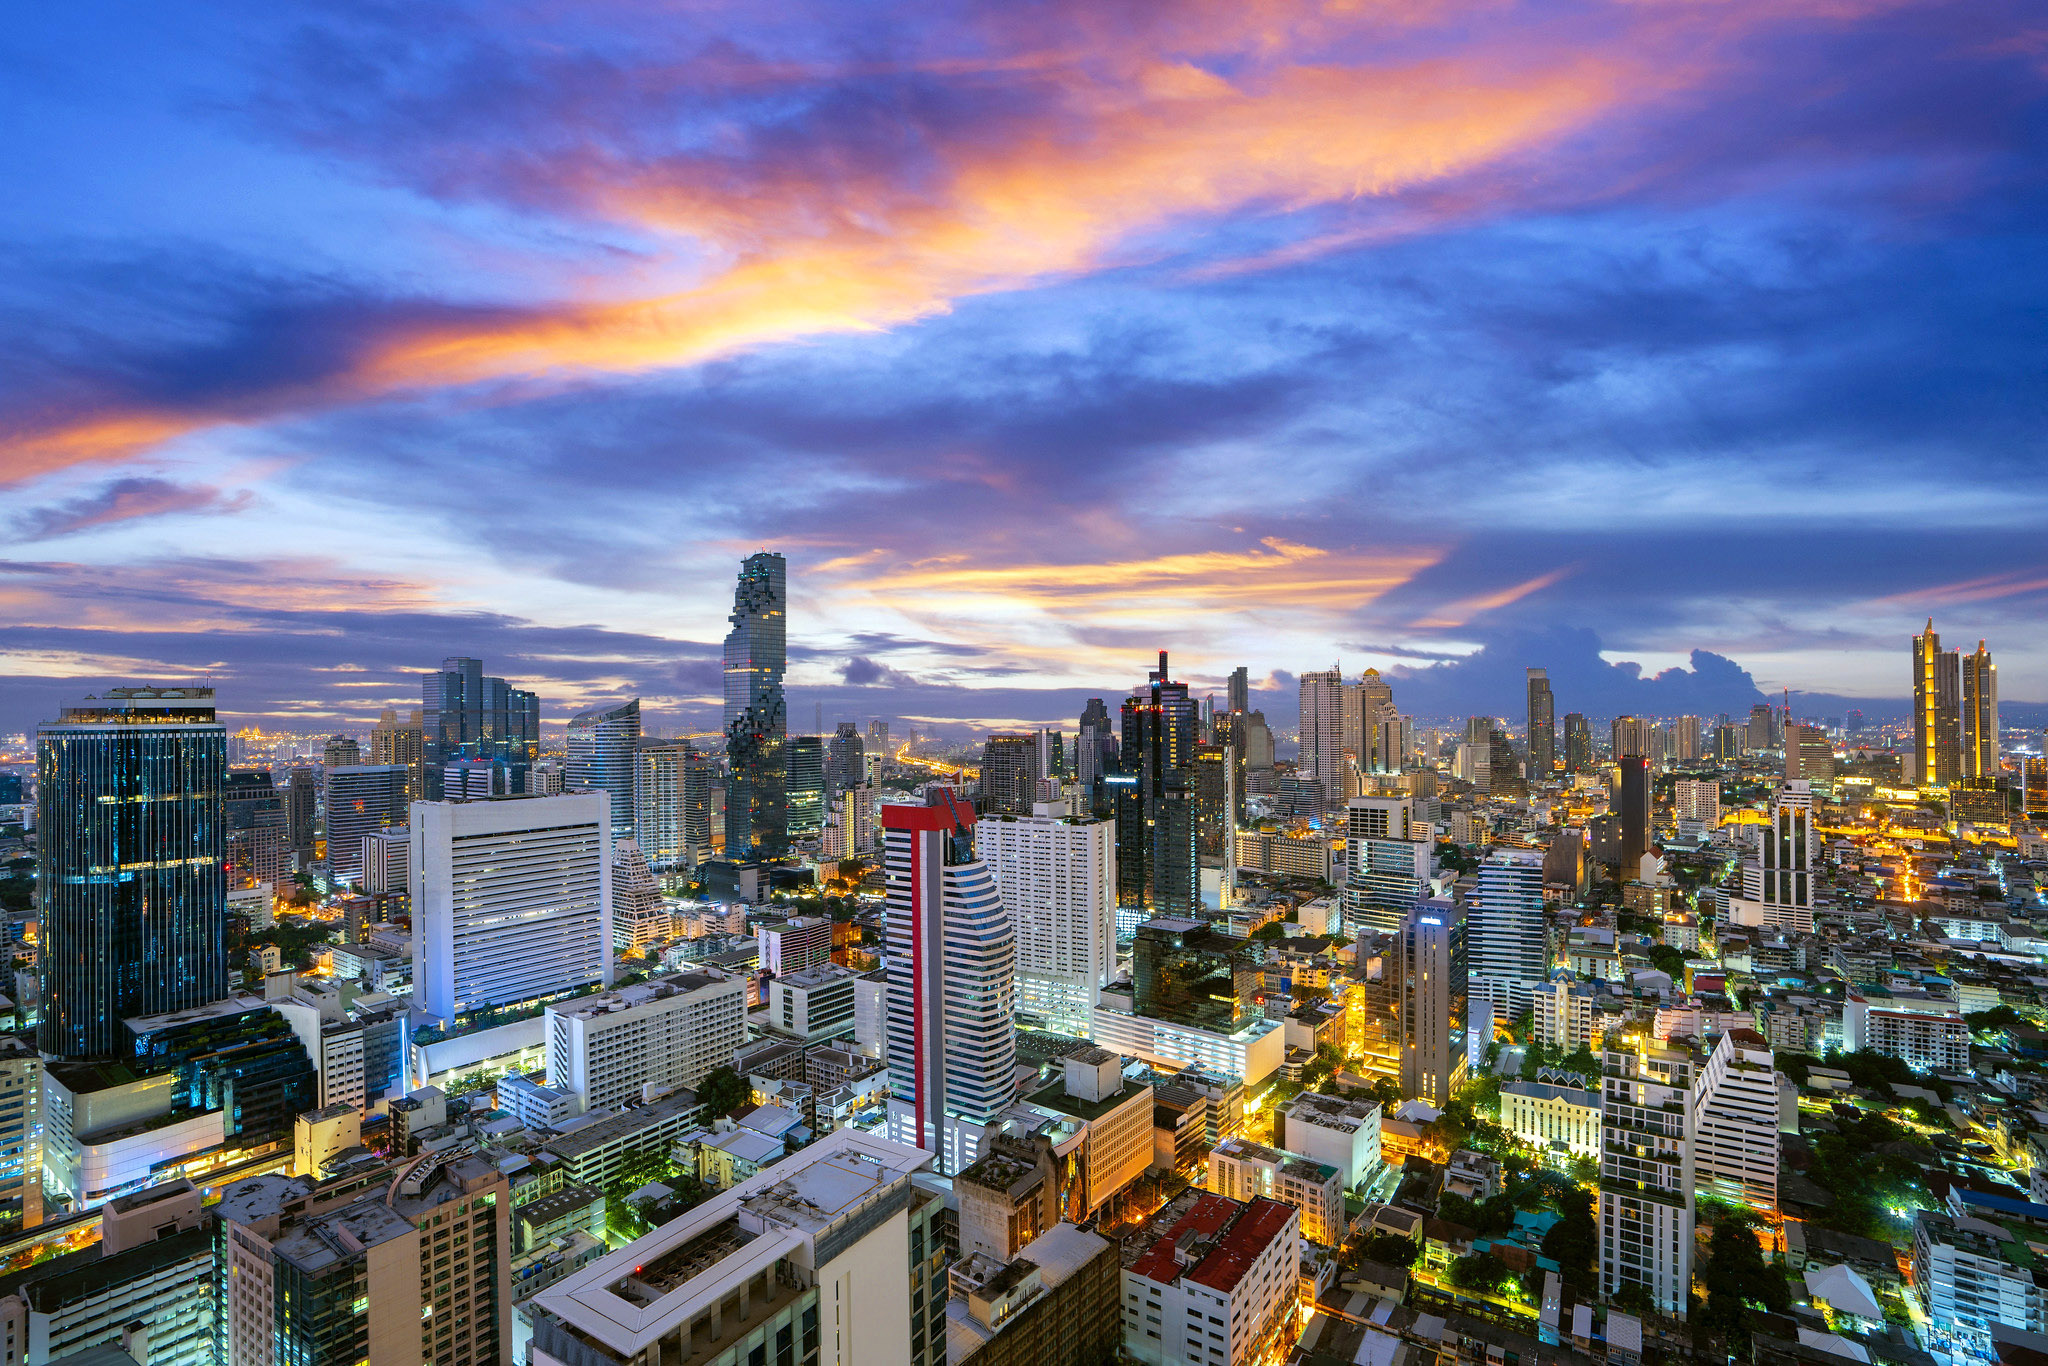 Bangkok city view from roof top of Hotel building by Anek Suwannaphoom.jpg